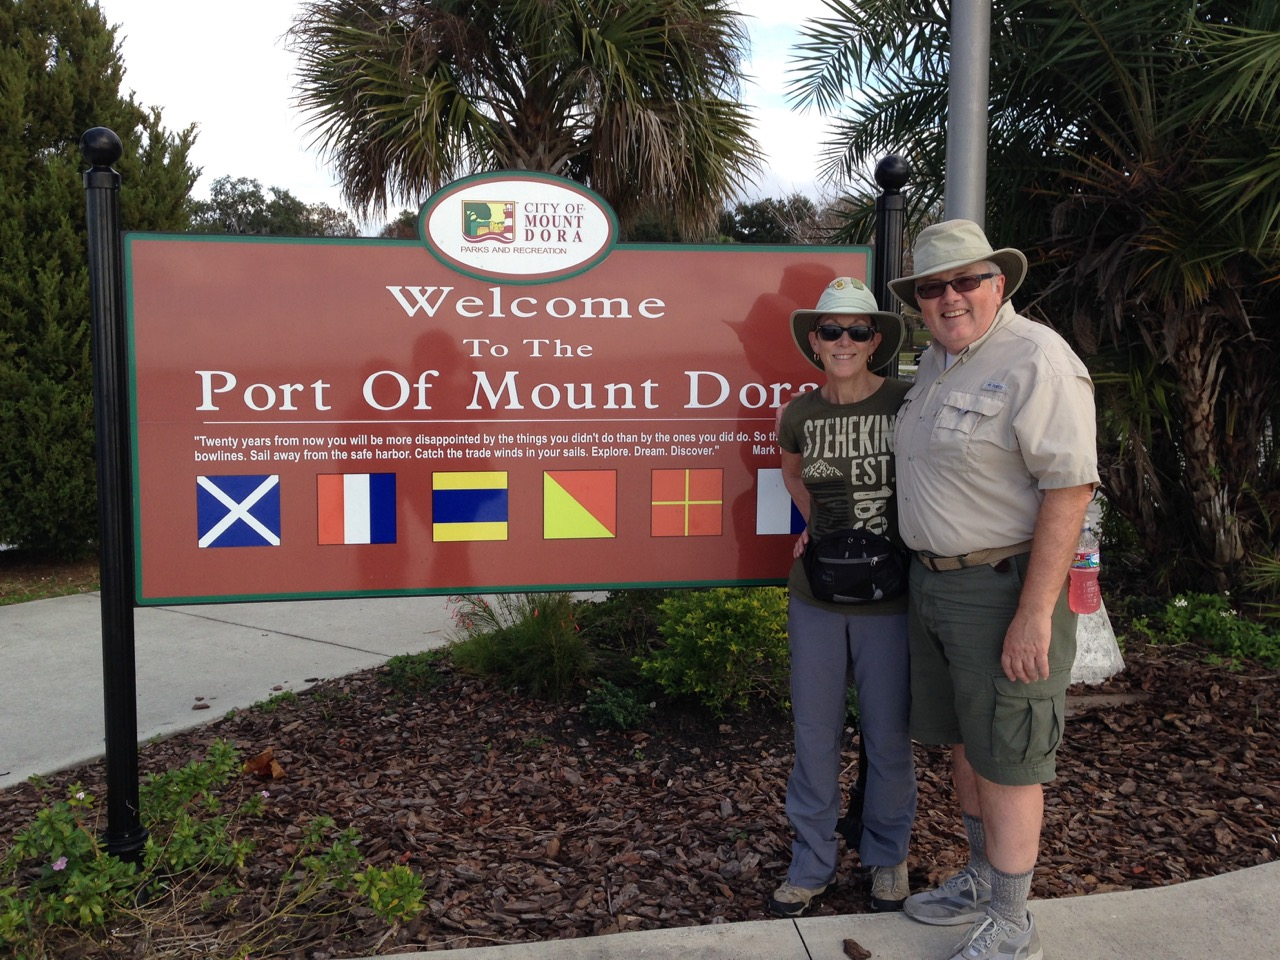 Man and woman standing in front of sign for Port of Mount Dora.